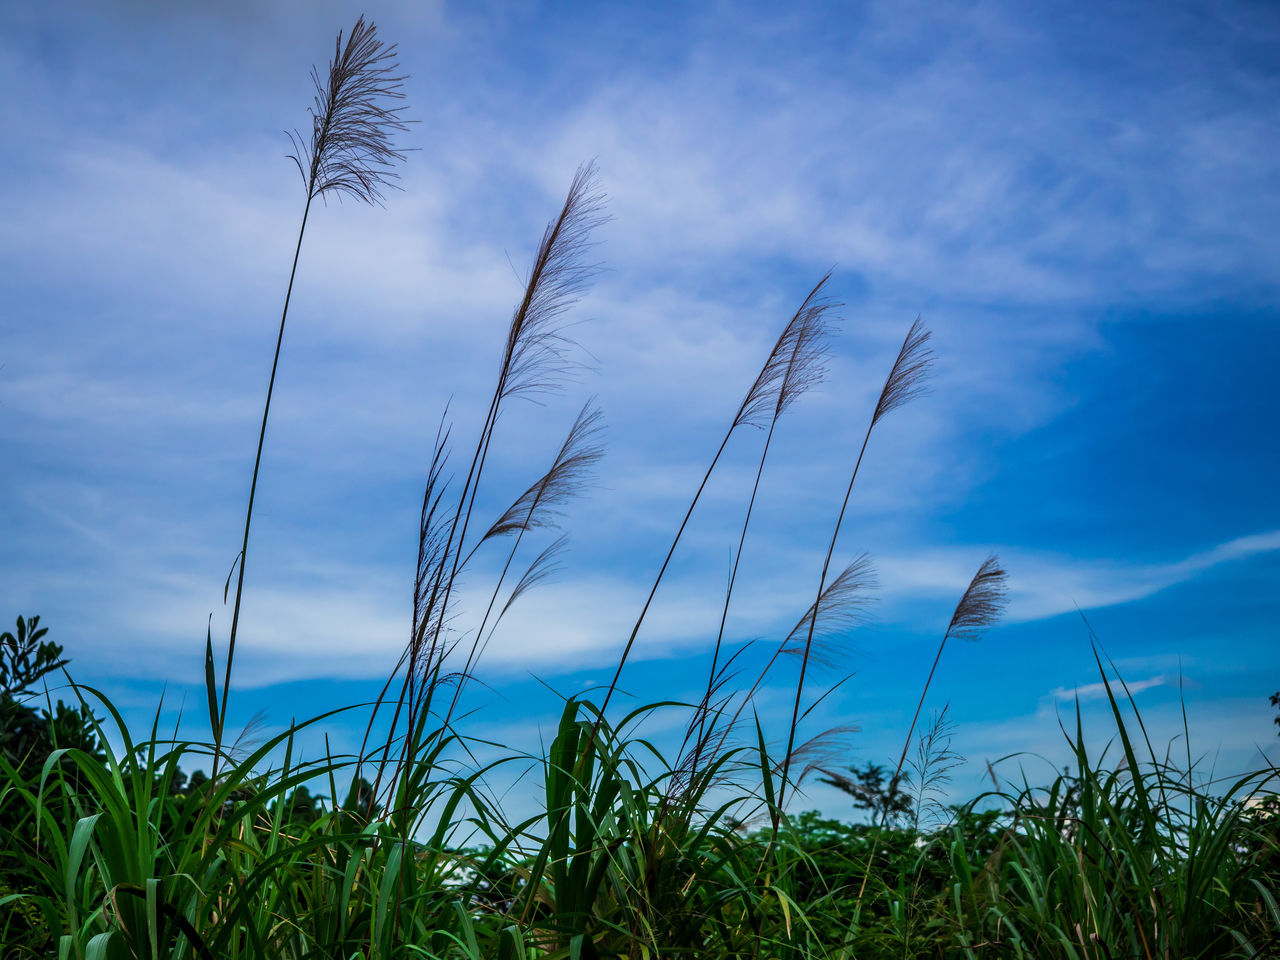 sky, growth, nature, cloud - sky, blue, beauty in nature, plant, grass, tranquility, tranquil scene, scenics, no people, low angle view, field, day, outdoors, green color